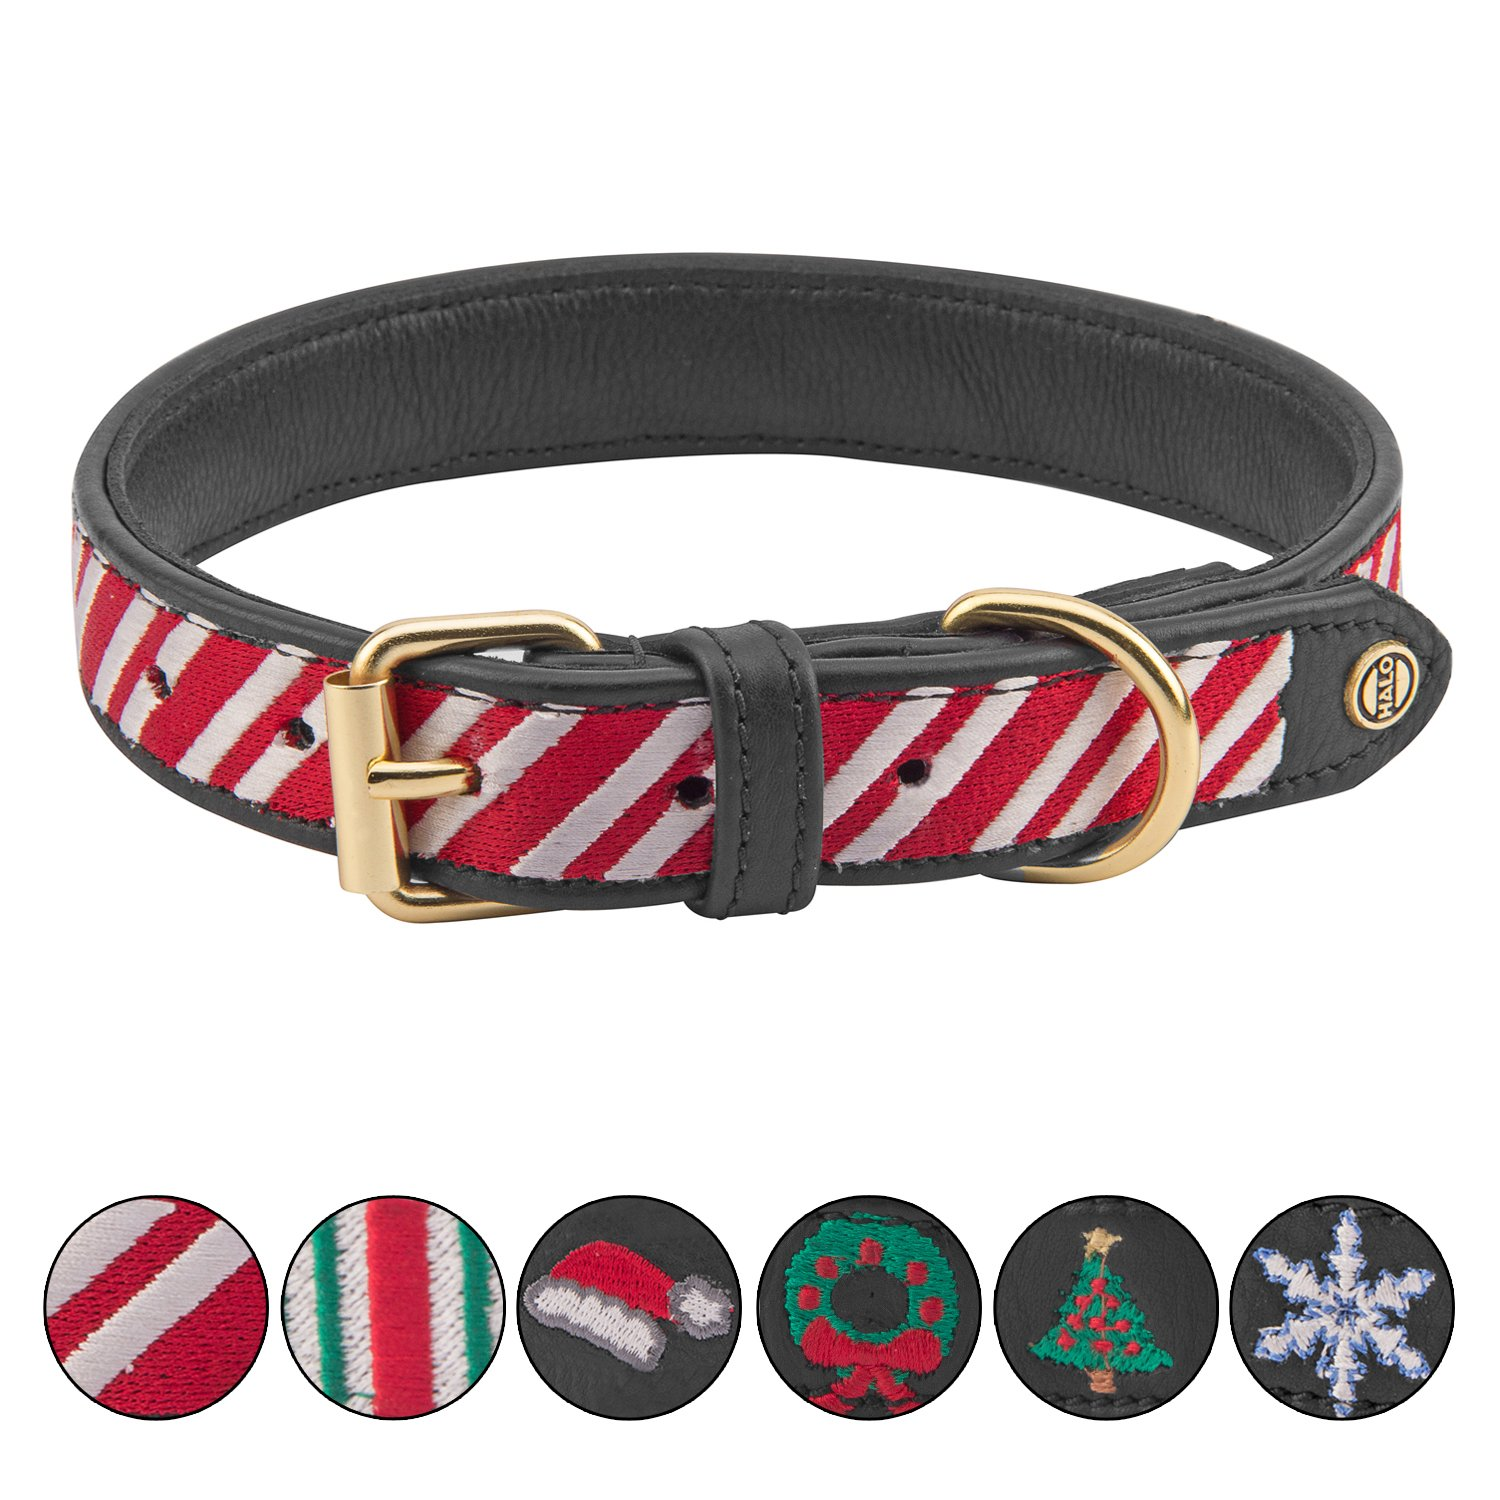 Black X-Small Black X-Small Halo Candycane Padded Adjustable Dog Collars Genuine Real Leather 100%